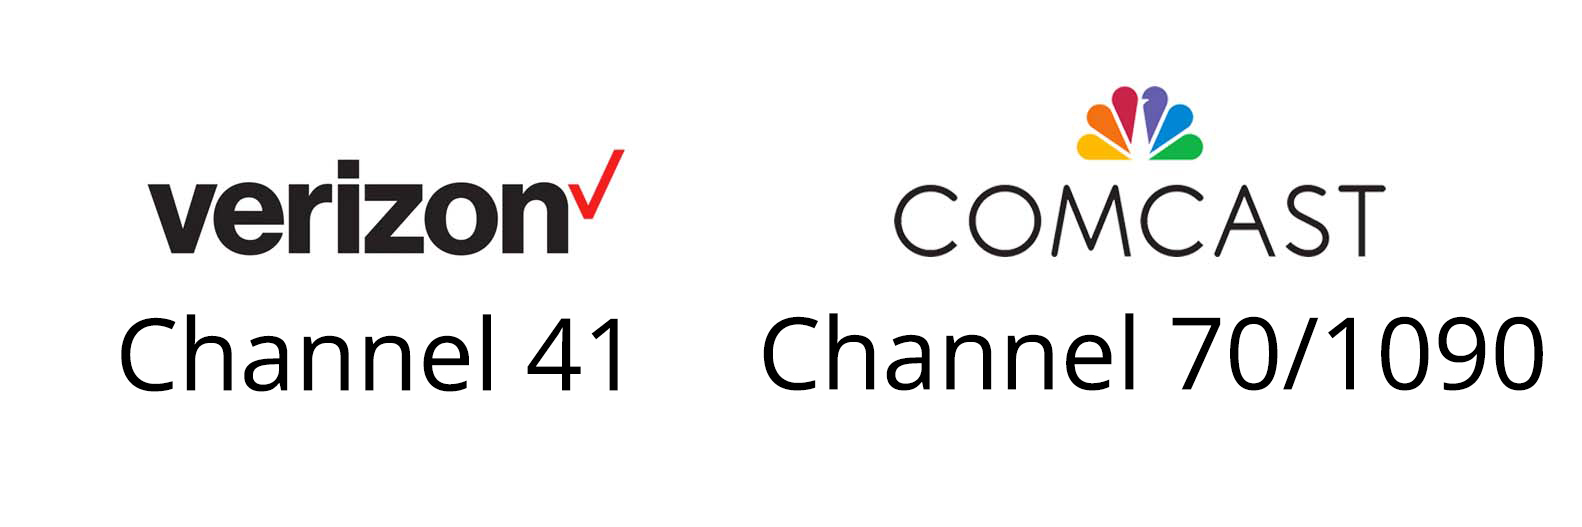 Verizon logo Channel 41; Comcast logo Channel 70/1090